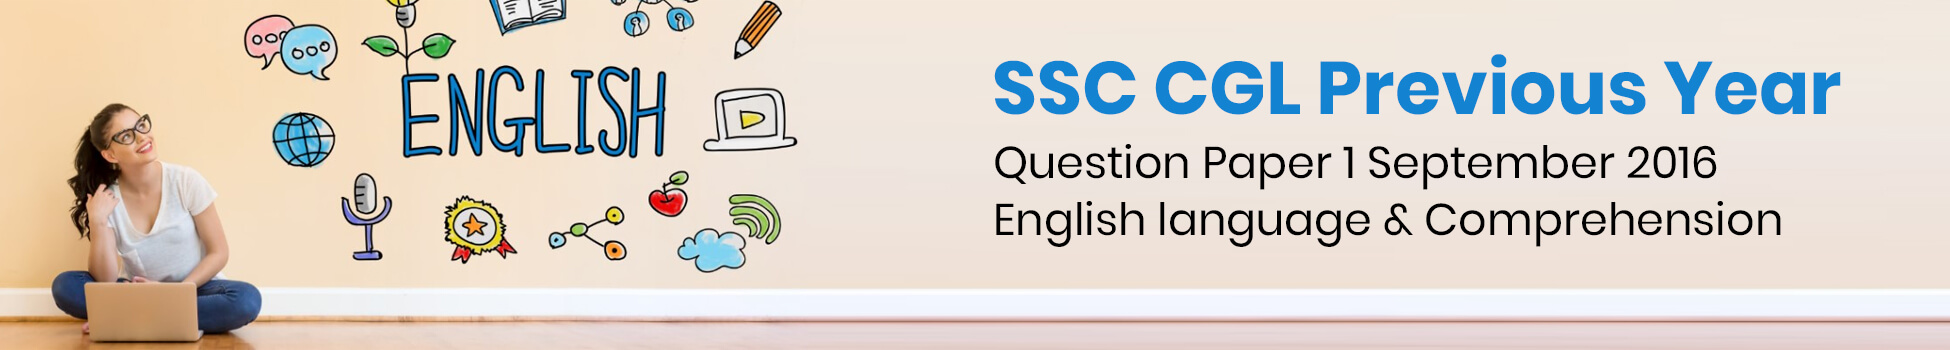 SSC CGL Previous Year Question Paper 1 September 2016 - English language & Comprehension